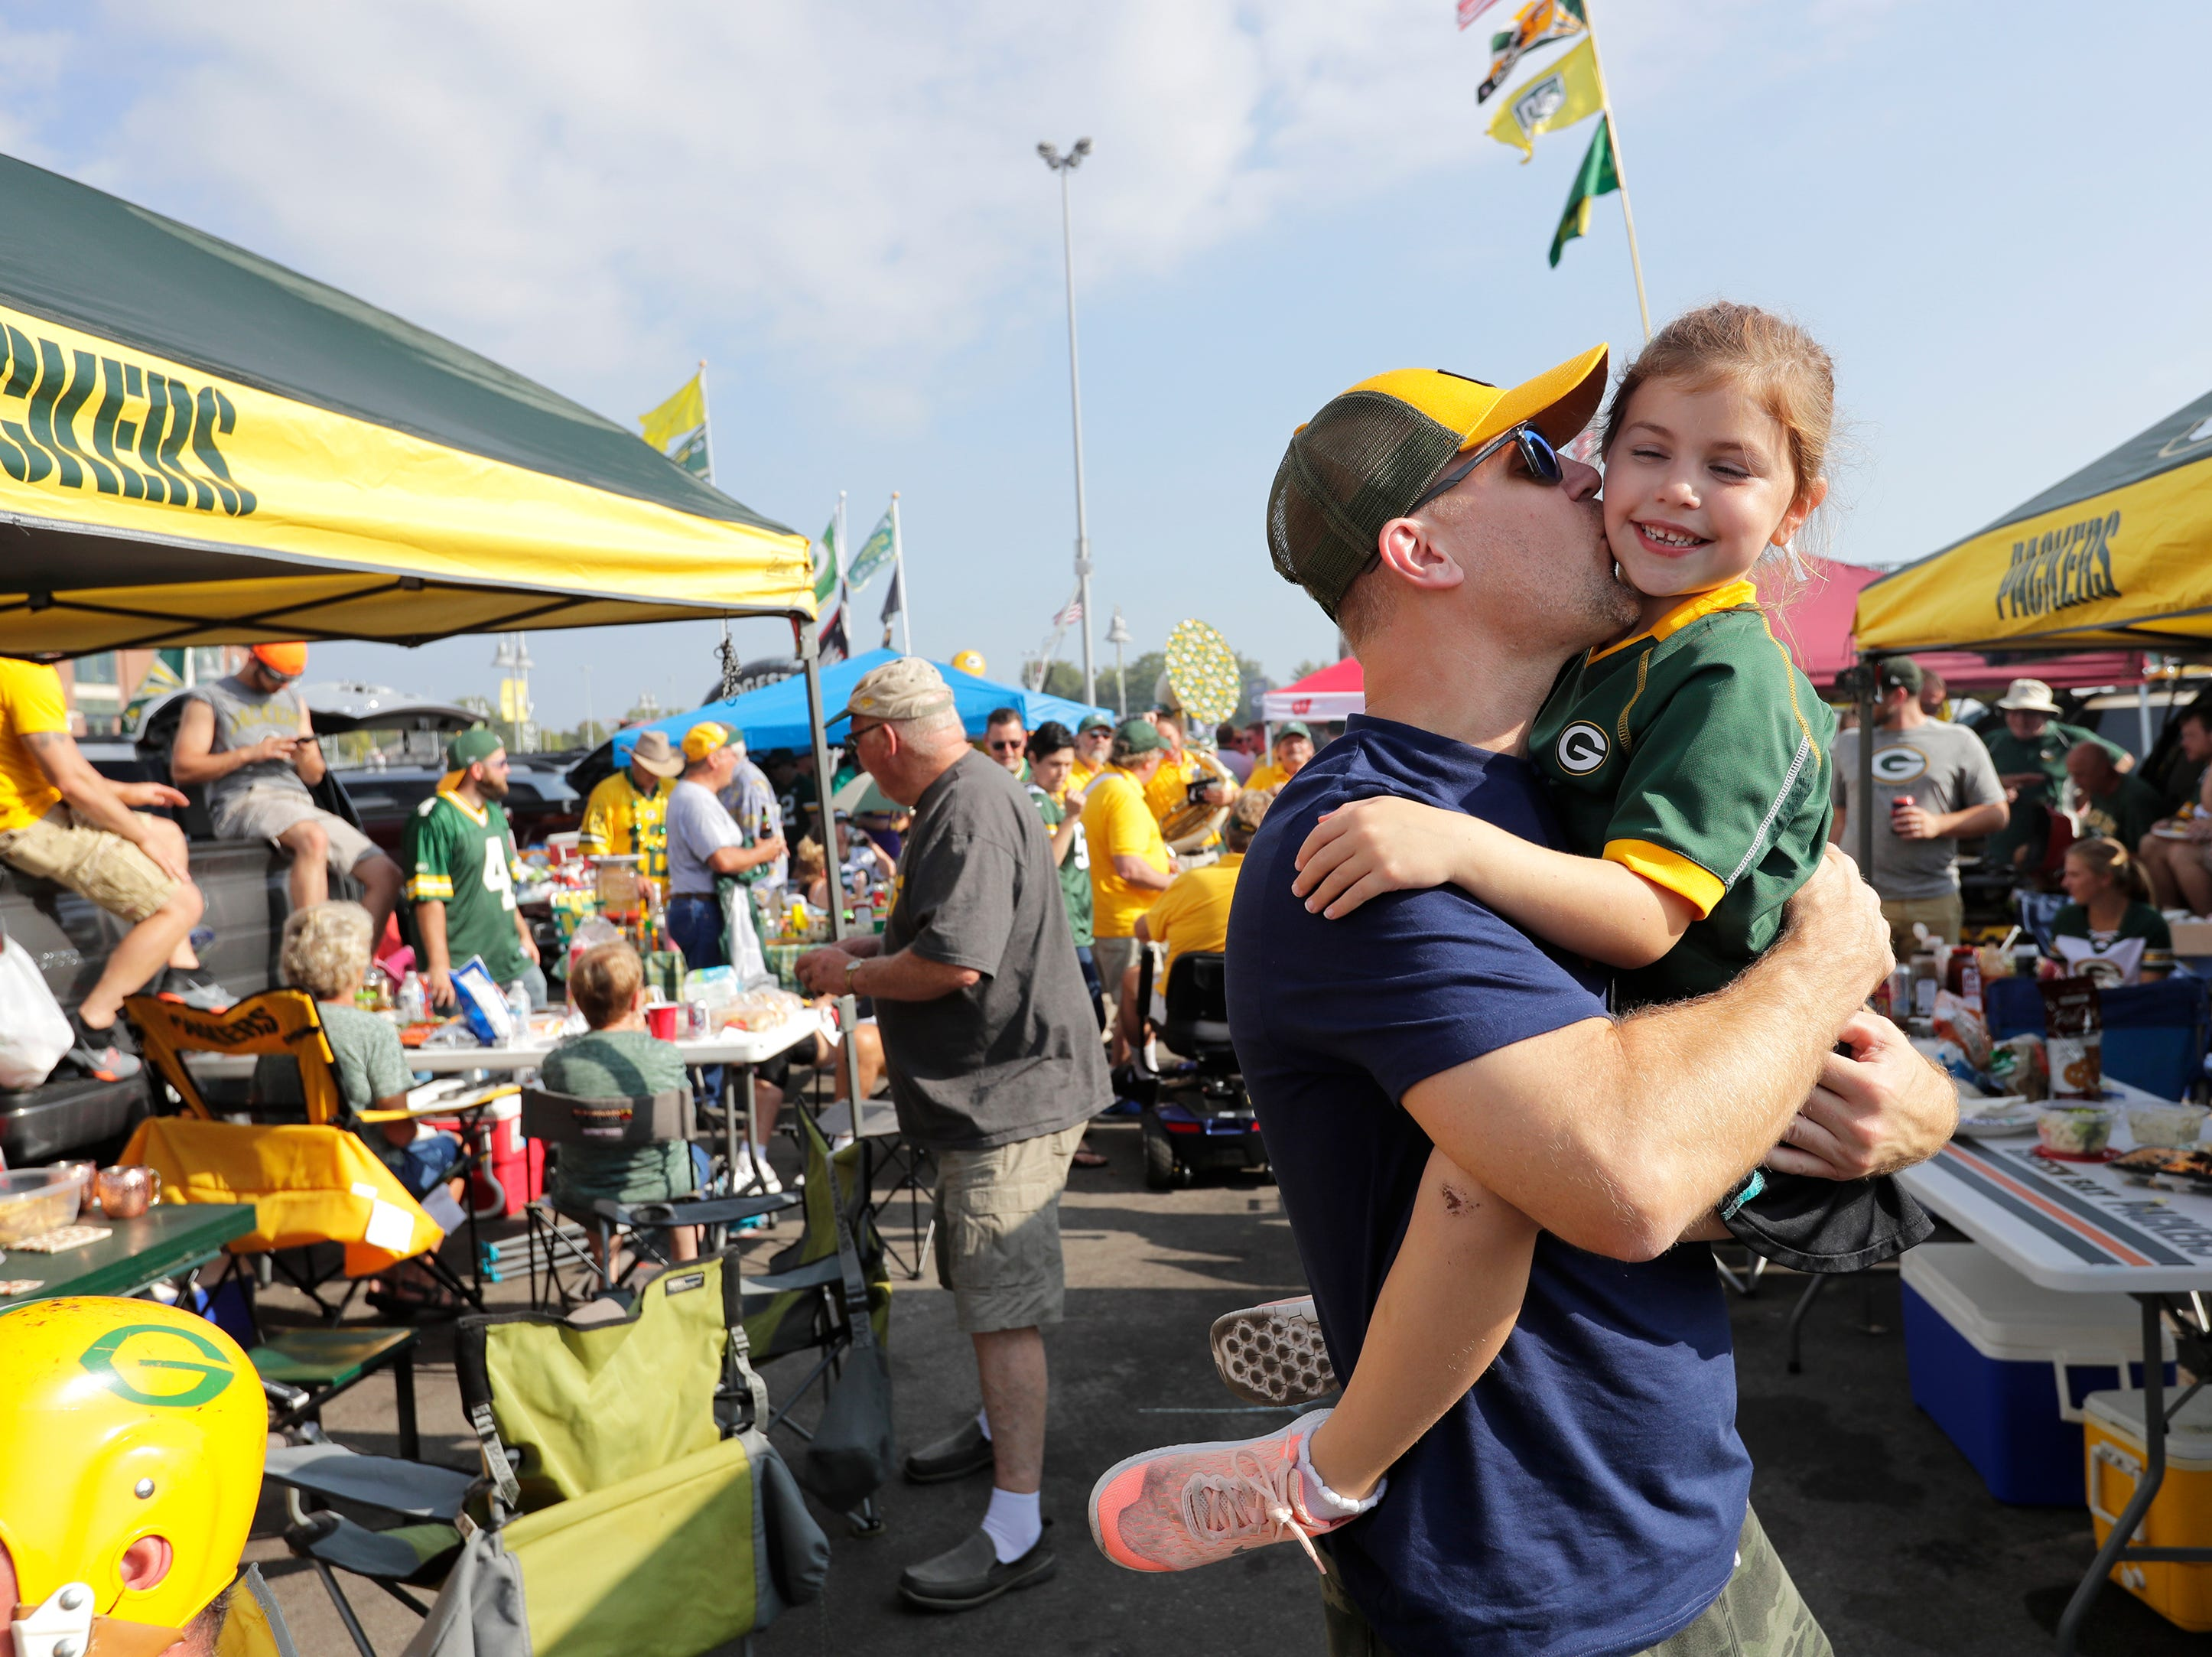 Craig Mickelson of Mahtomedi, MN, and his daughter Zoey, 6, have fun tailgating before the Green Bay Packers play against the Minnesota Vikings Sunday, Sept. 16, 2018, at Lambeau Field in Green Bay, Wis. Dan Powers/USA TODAY NETWORK-Wisconsin